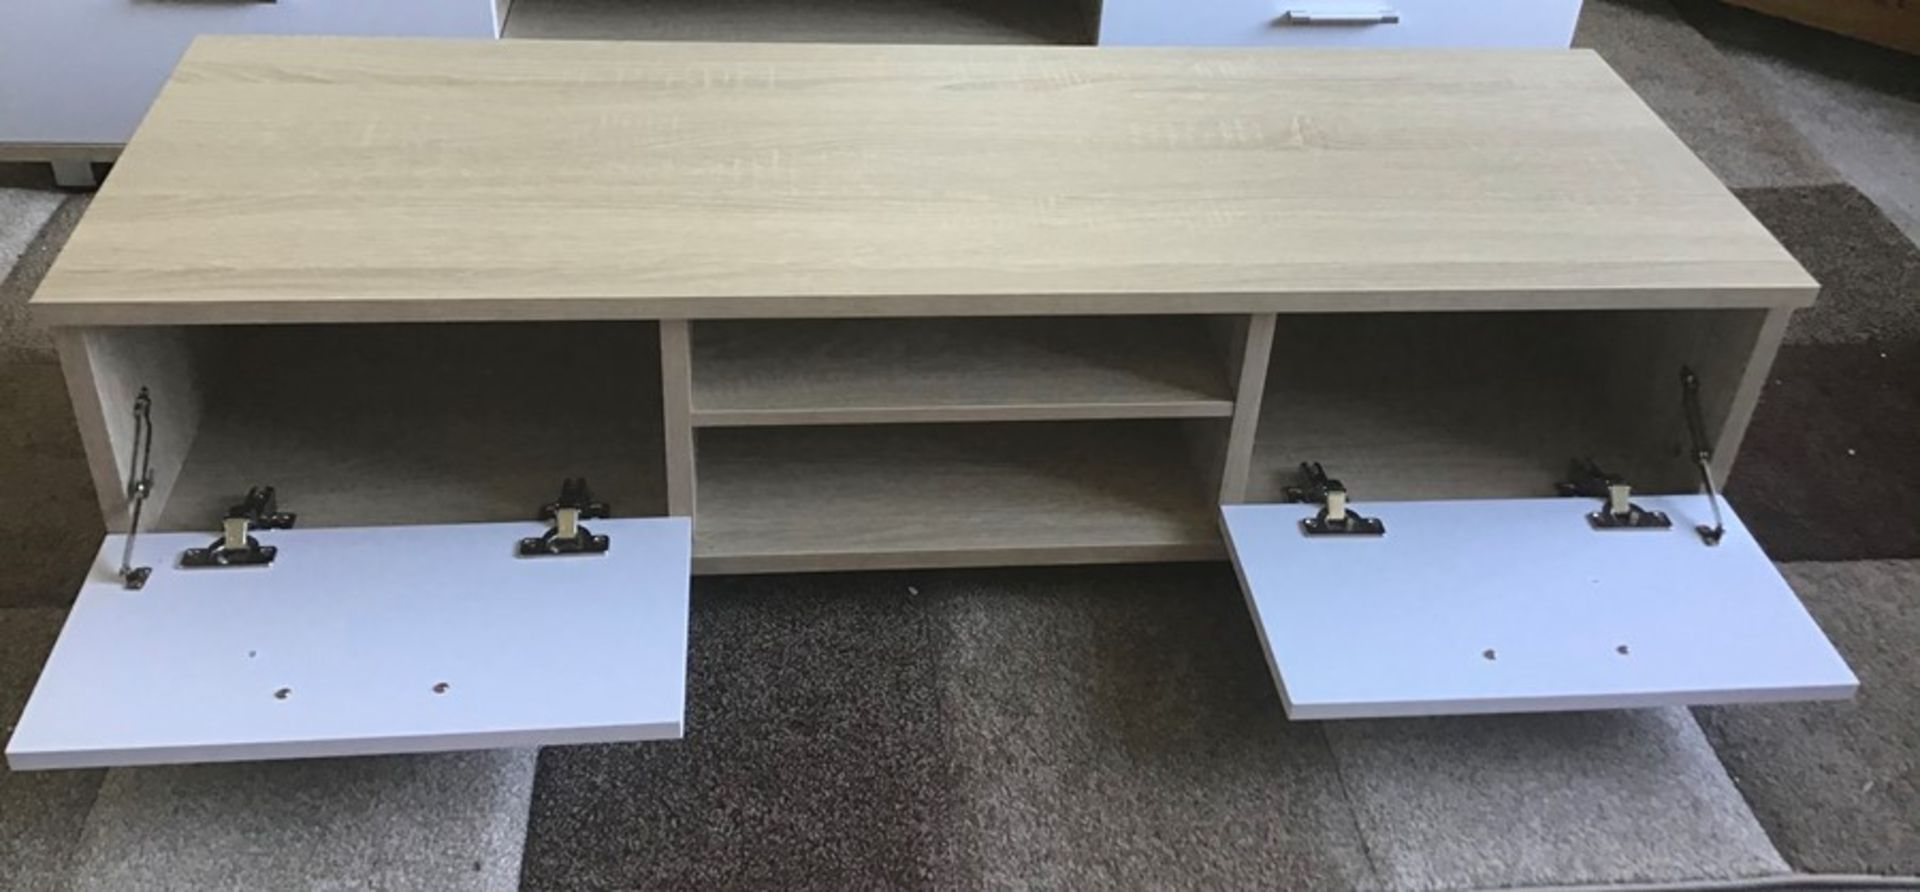 Oak and white 128cm TV stand, brand new, flat packed and boxed. RRP Circa £100.00 | 3x Boxes - Image 2 of 3